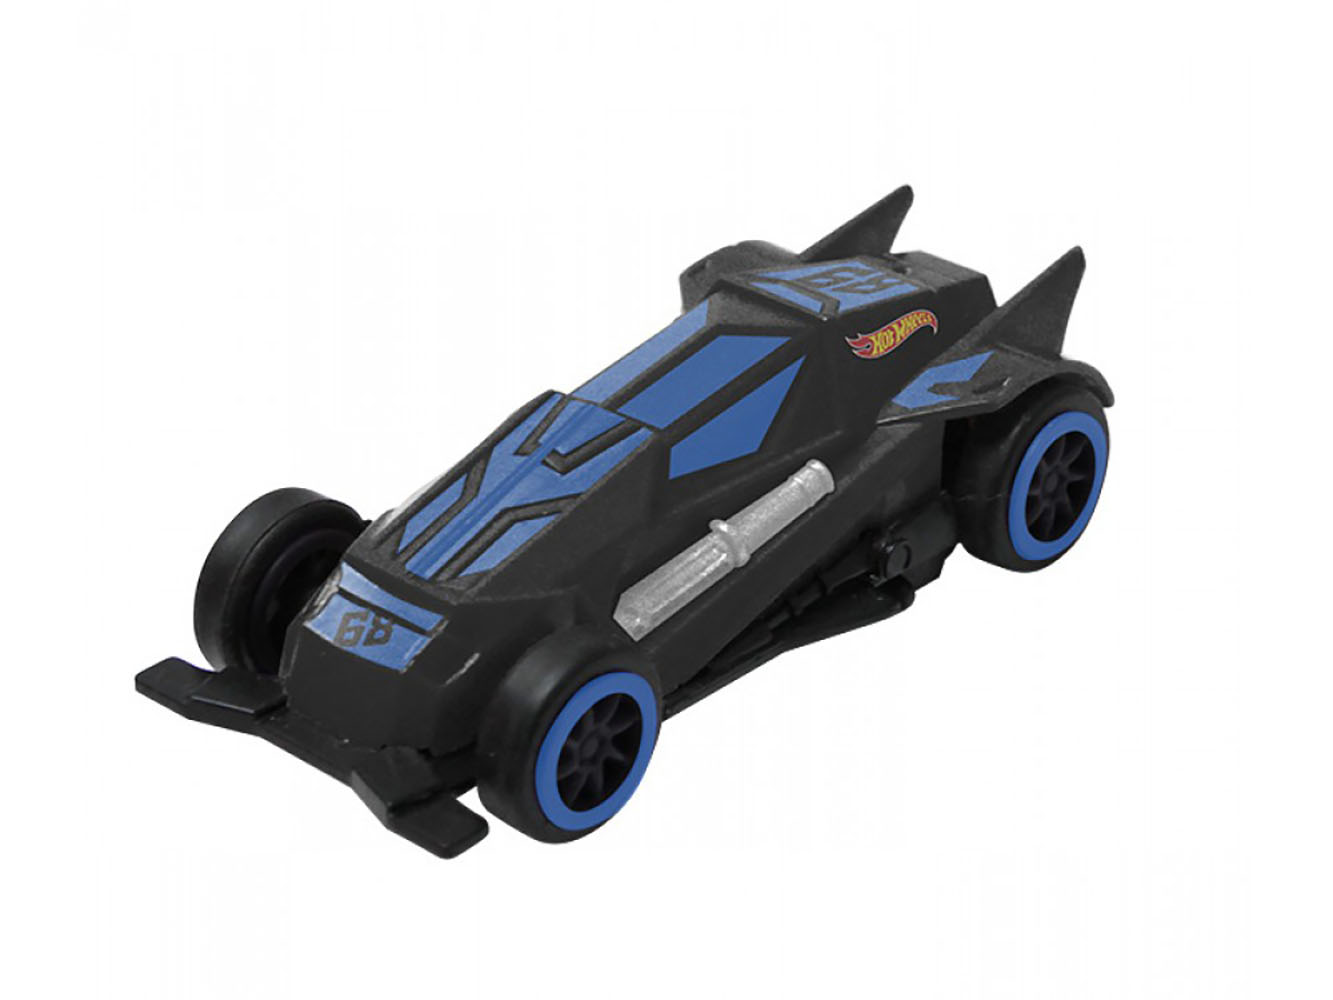 Hot Wheels Piste de course en mallette